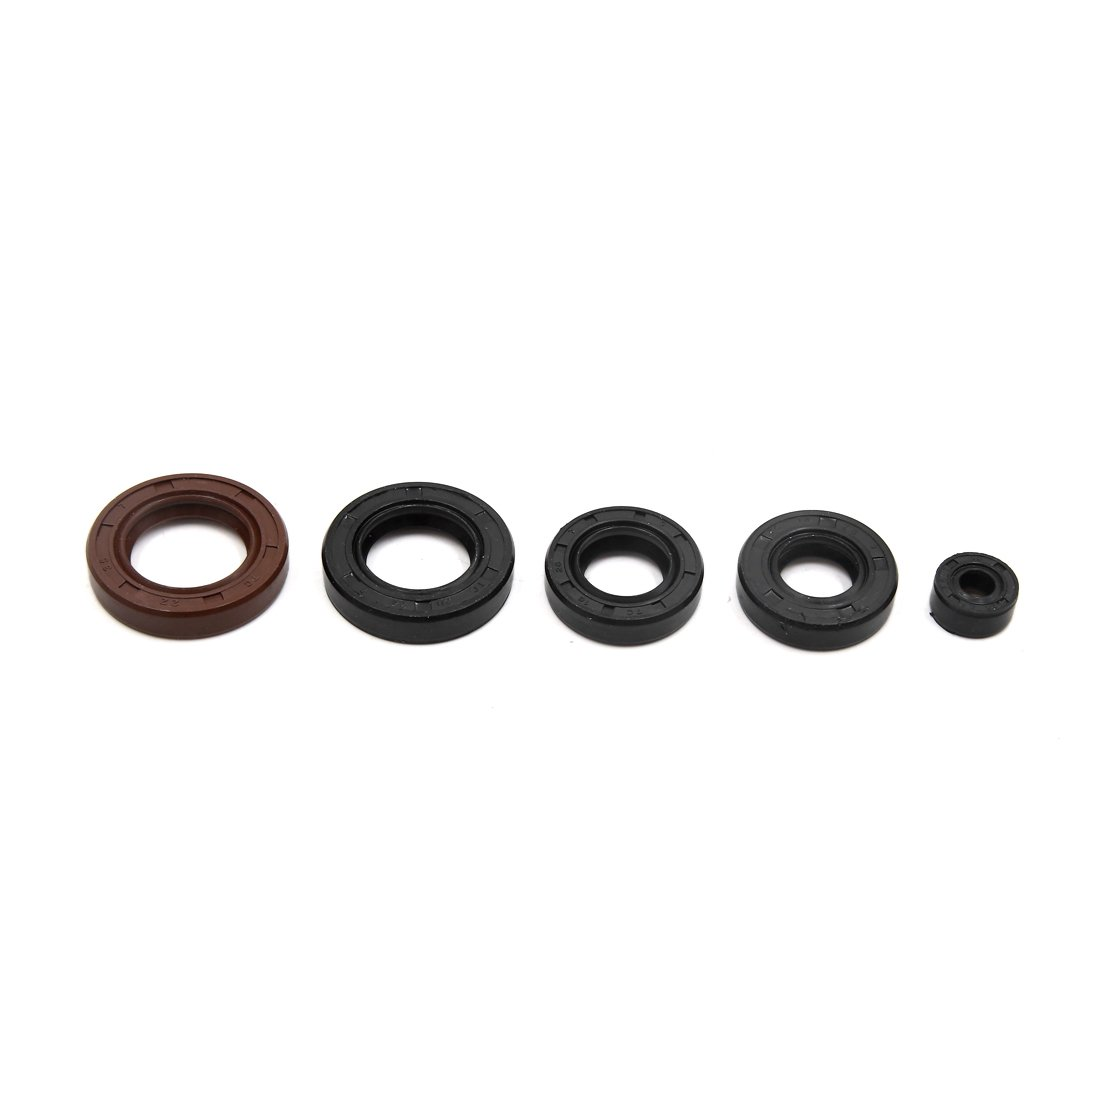 Sourcingmap Black Round Shape Ring Motorcycle Scooter Engine Oil Seal Washer Kit for CG 125